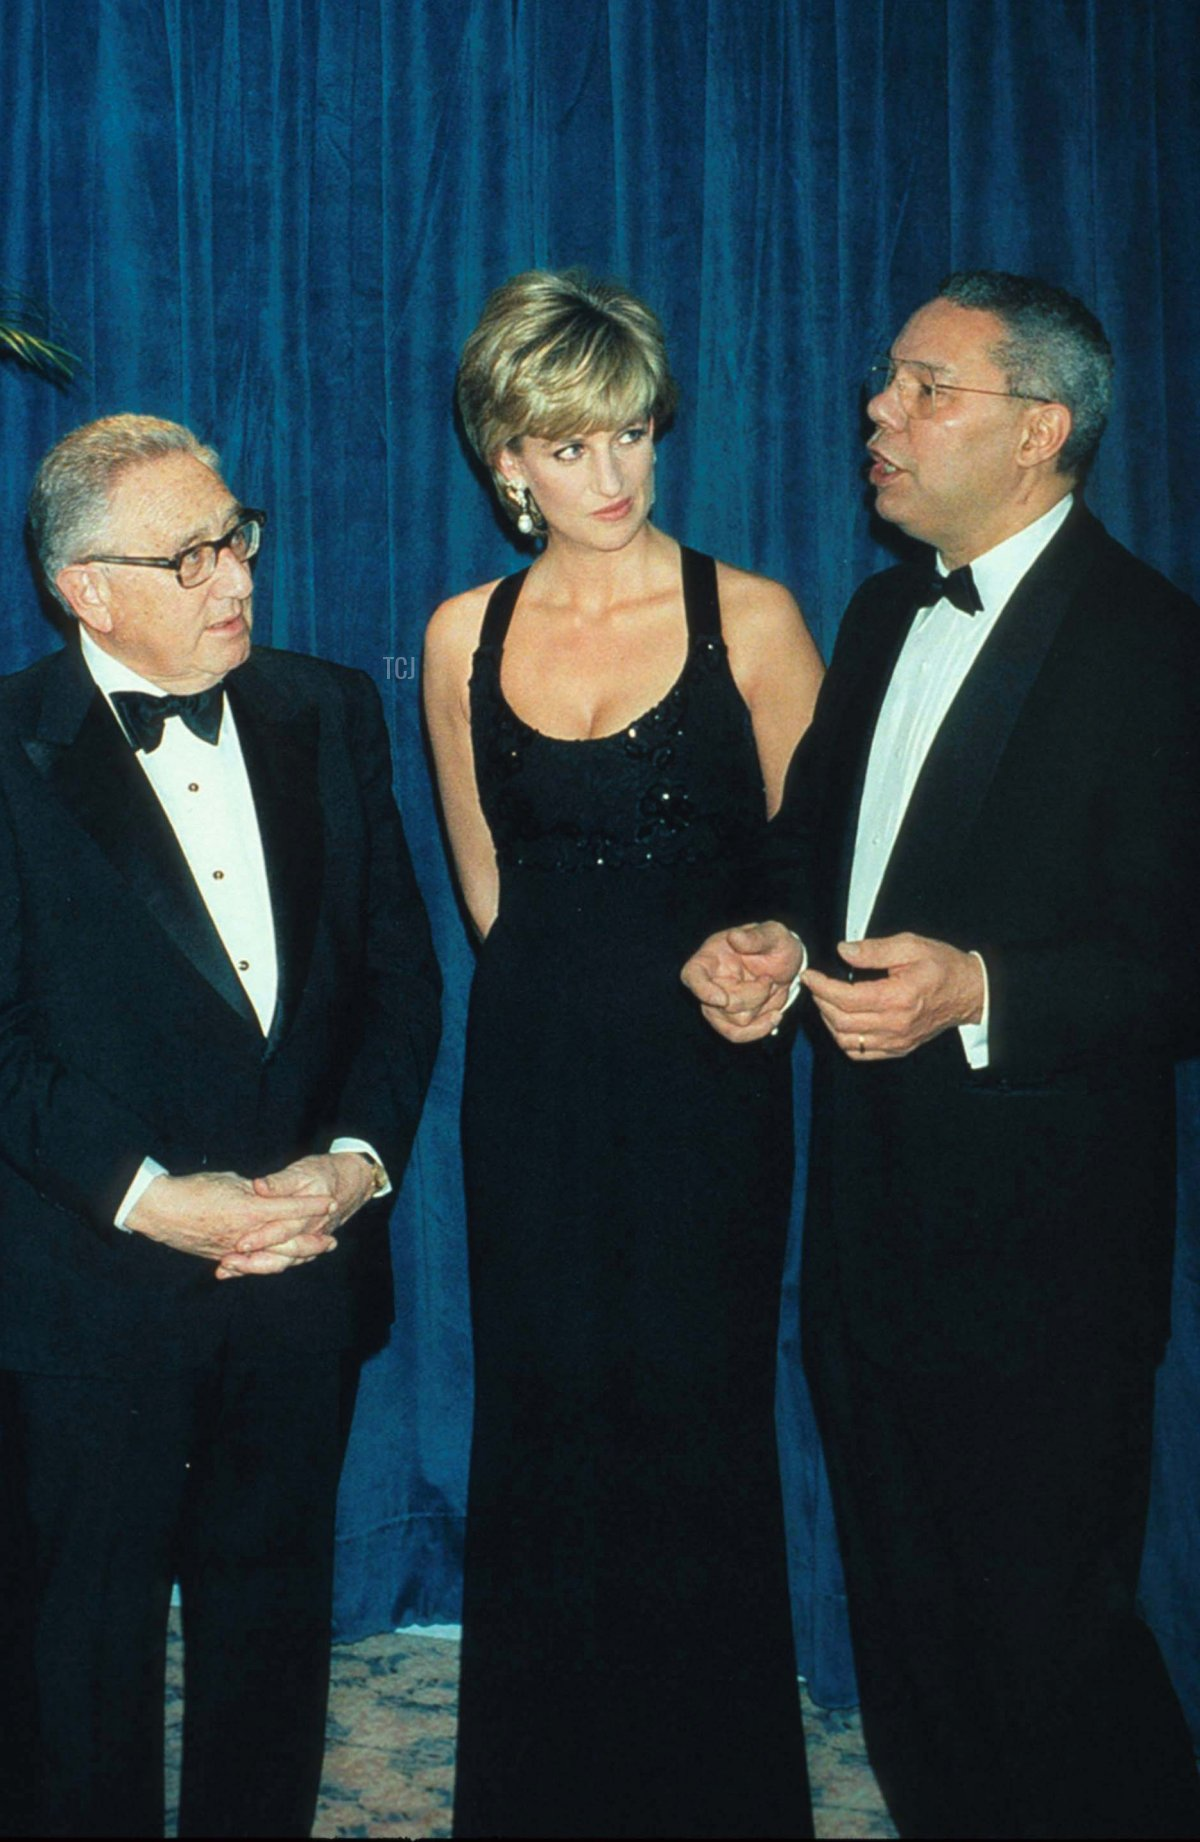 Lady Diana Spencer stands with Henry Kissinger and General Colin Powell at the 41st annual United Cerebral Palsy Awards gala December 11, 1995 in New York City. Lady Diana, the Princess of Wales, received the UCP Humanitarian Award at the fundraising evening